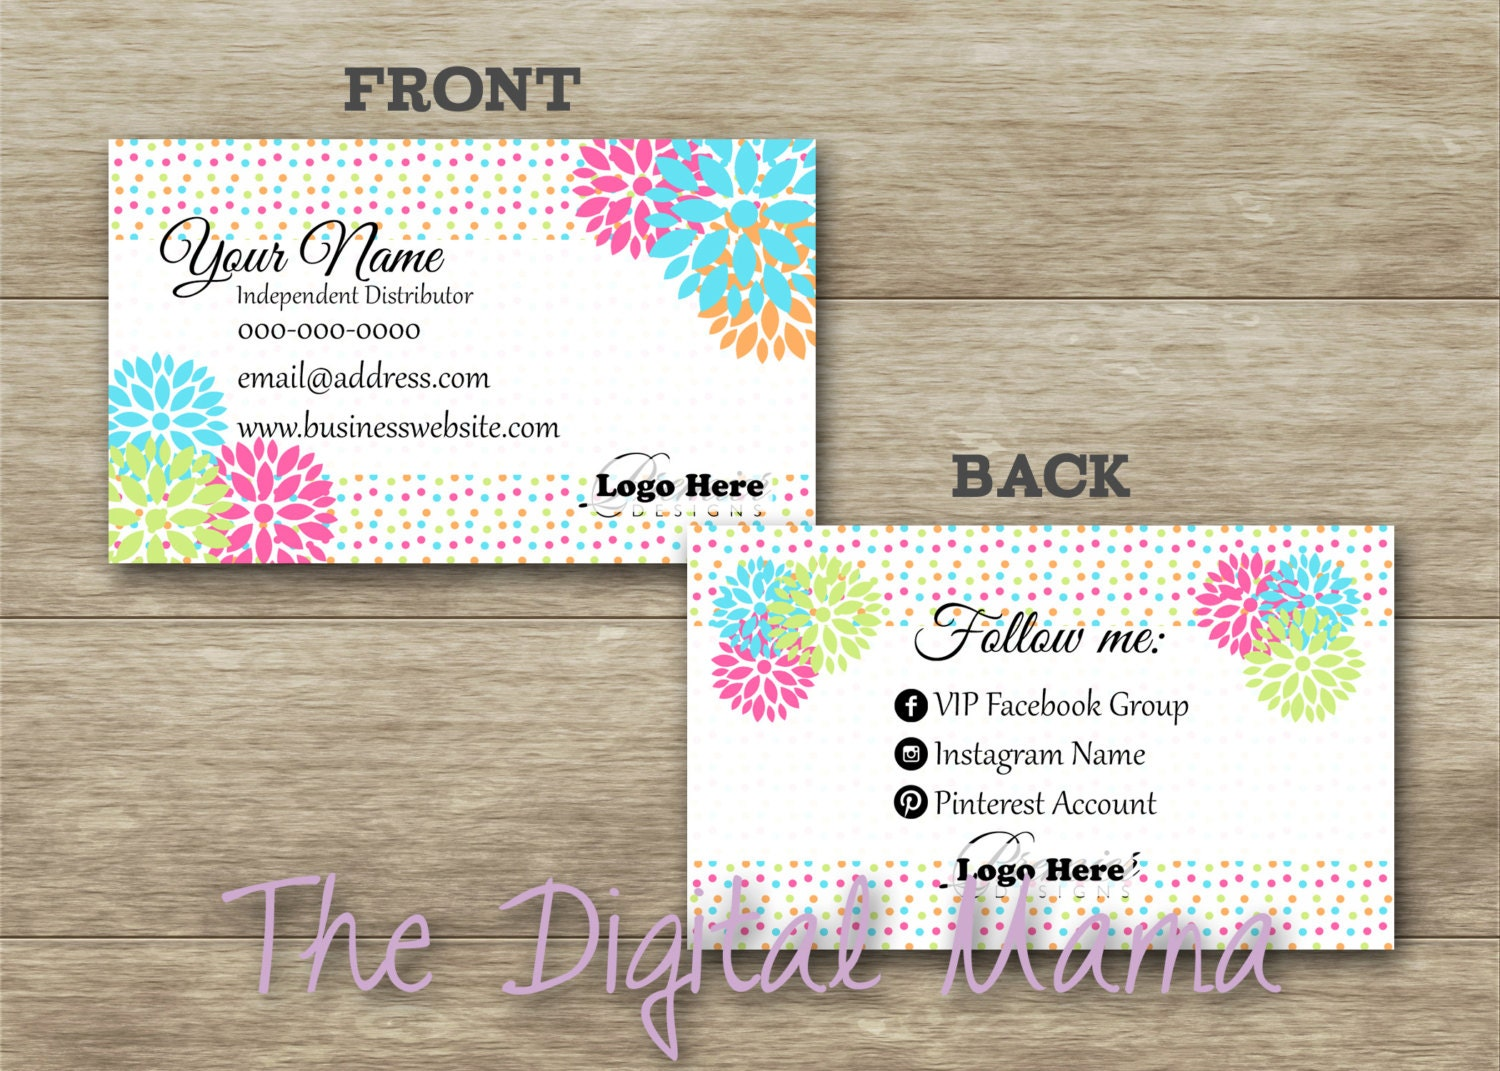 Premier designs business cards choice image free business cards baby clothing store business card design wallskid premier designs jewelry business card design magicingreecefo choice image magicingreecefo Images